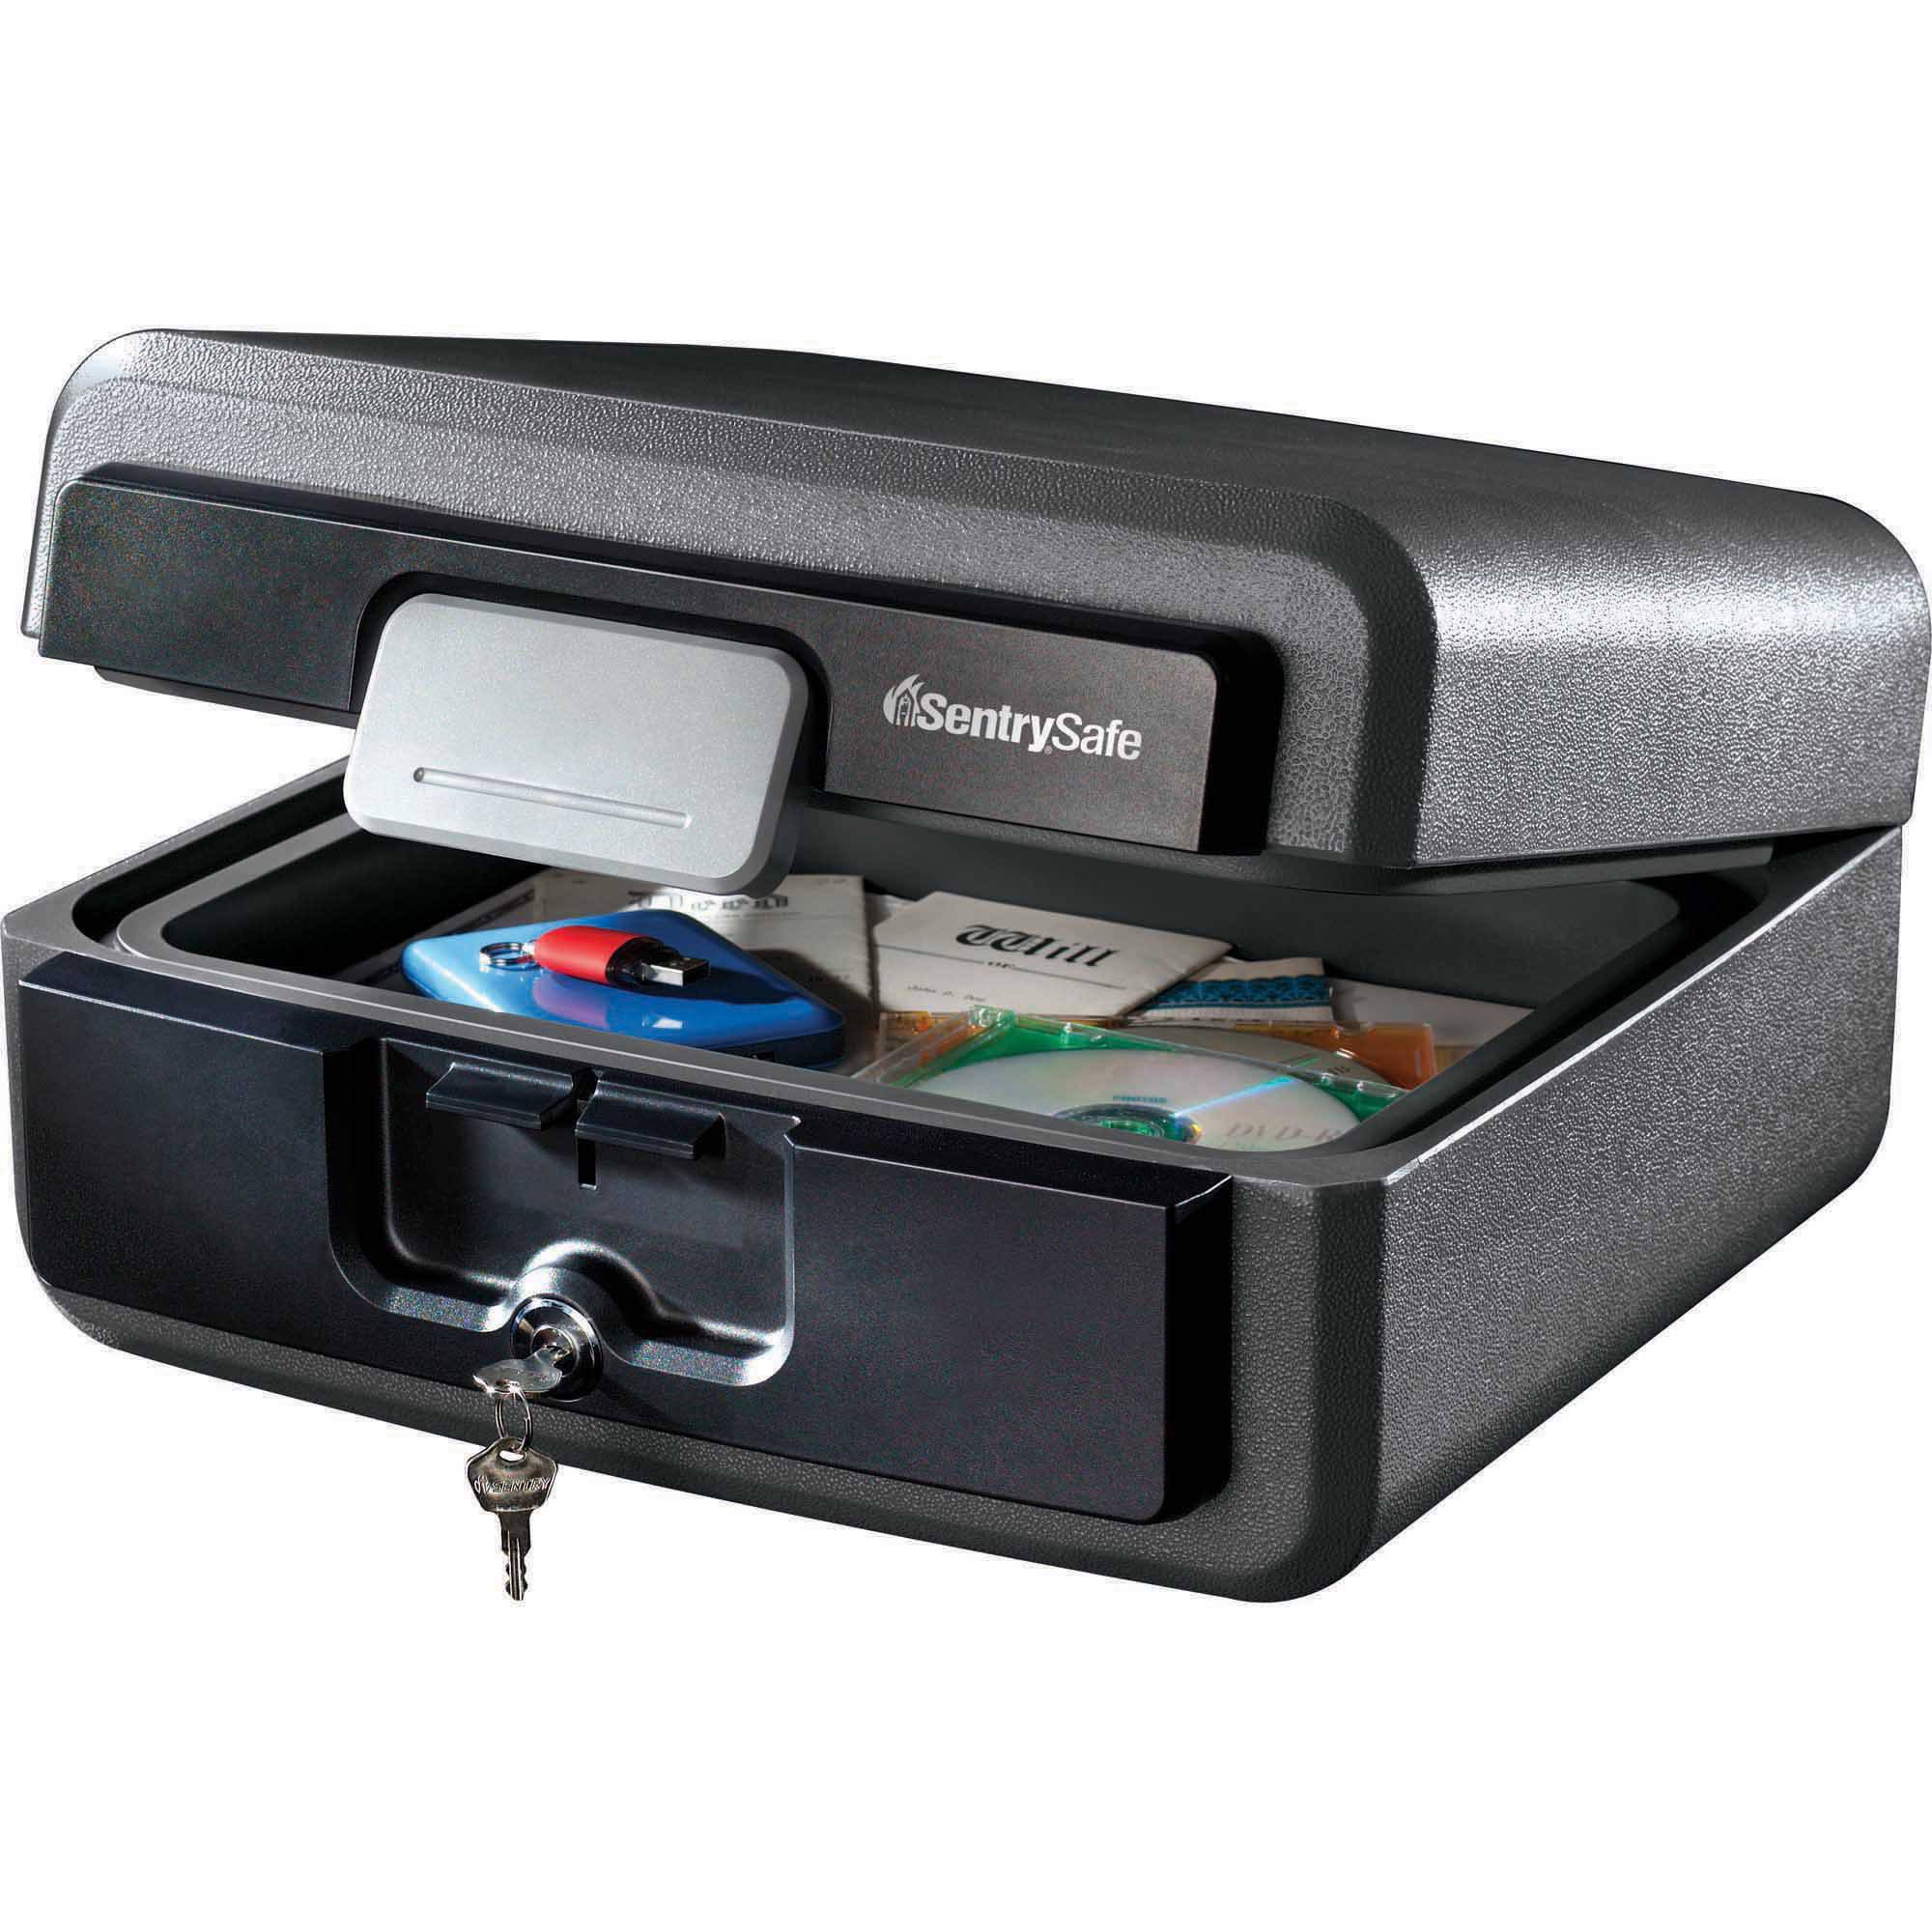 SentrySafe 0.37 cu. ft. Waterproof Fire Chest, HD2100